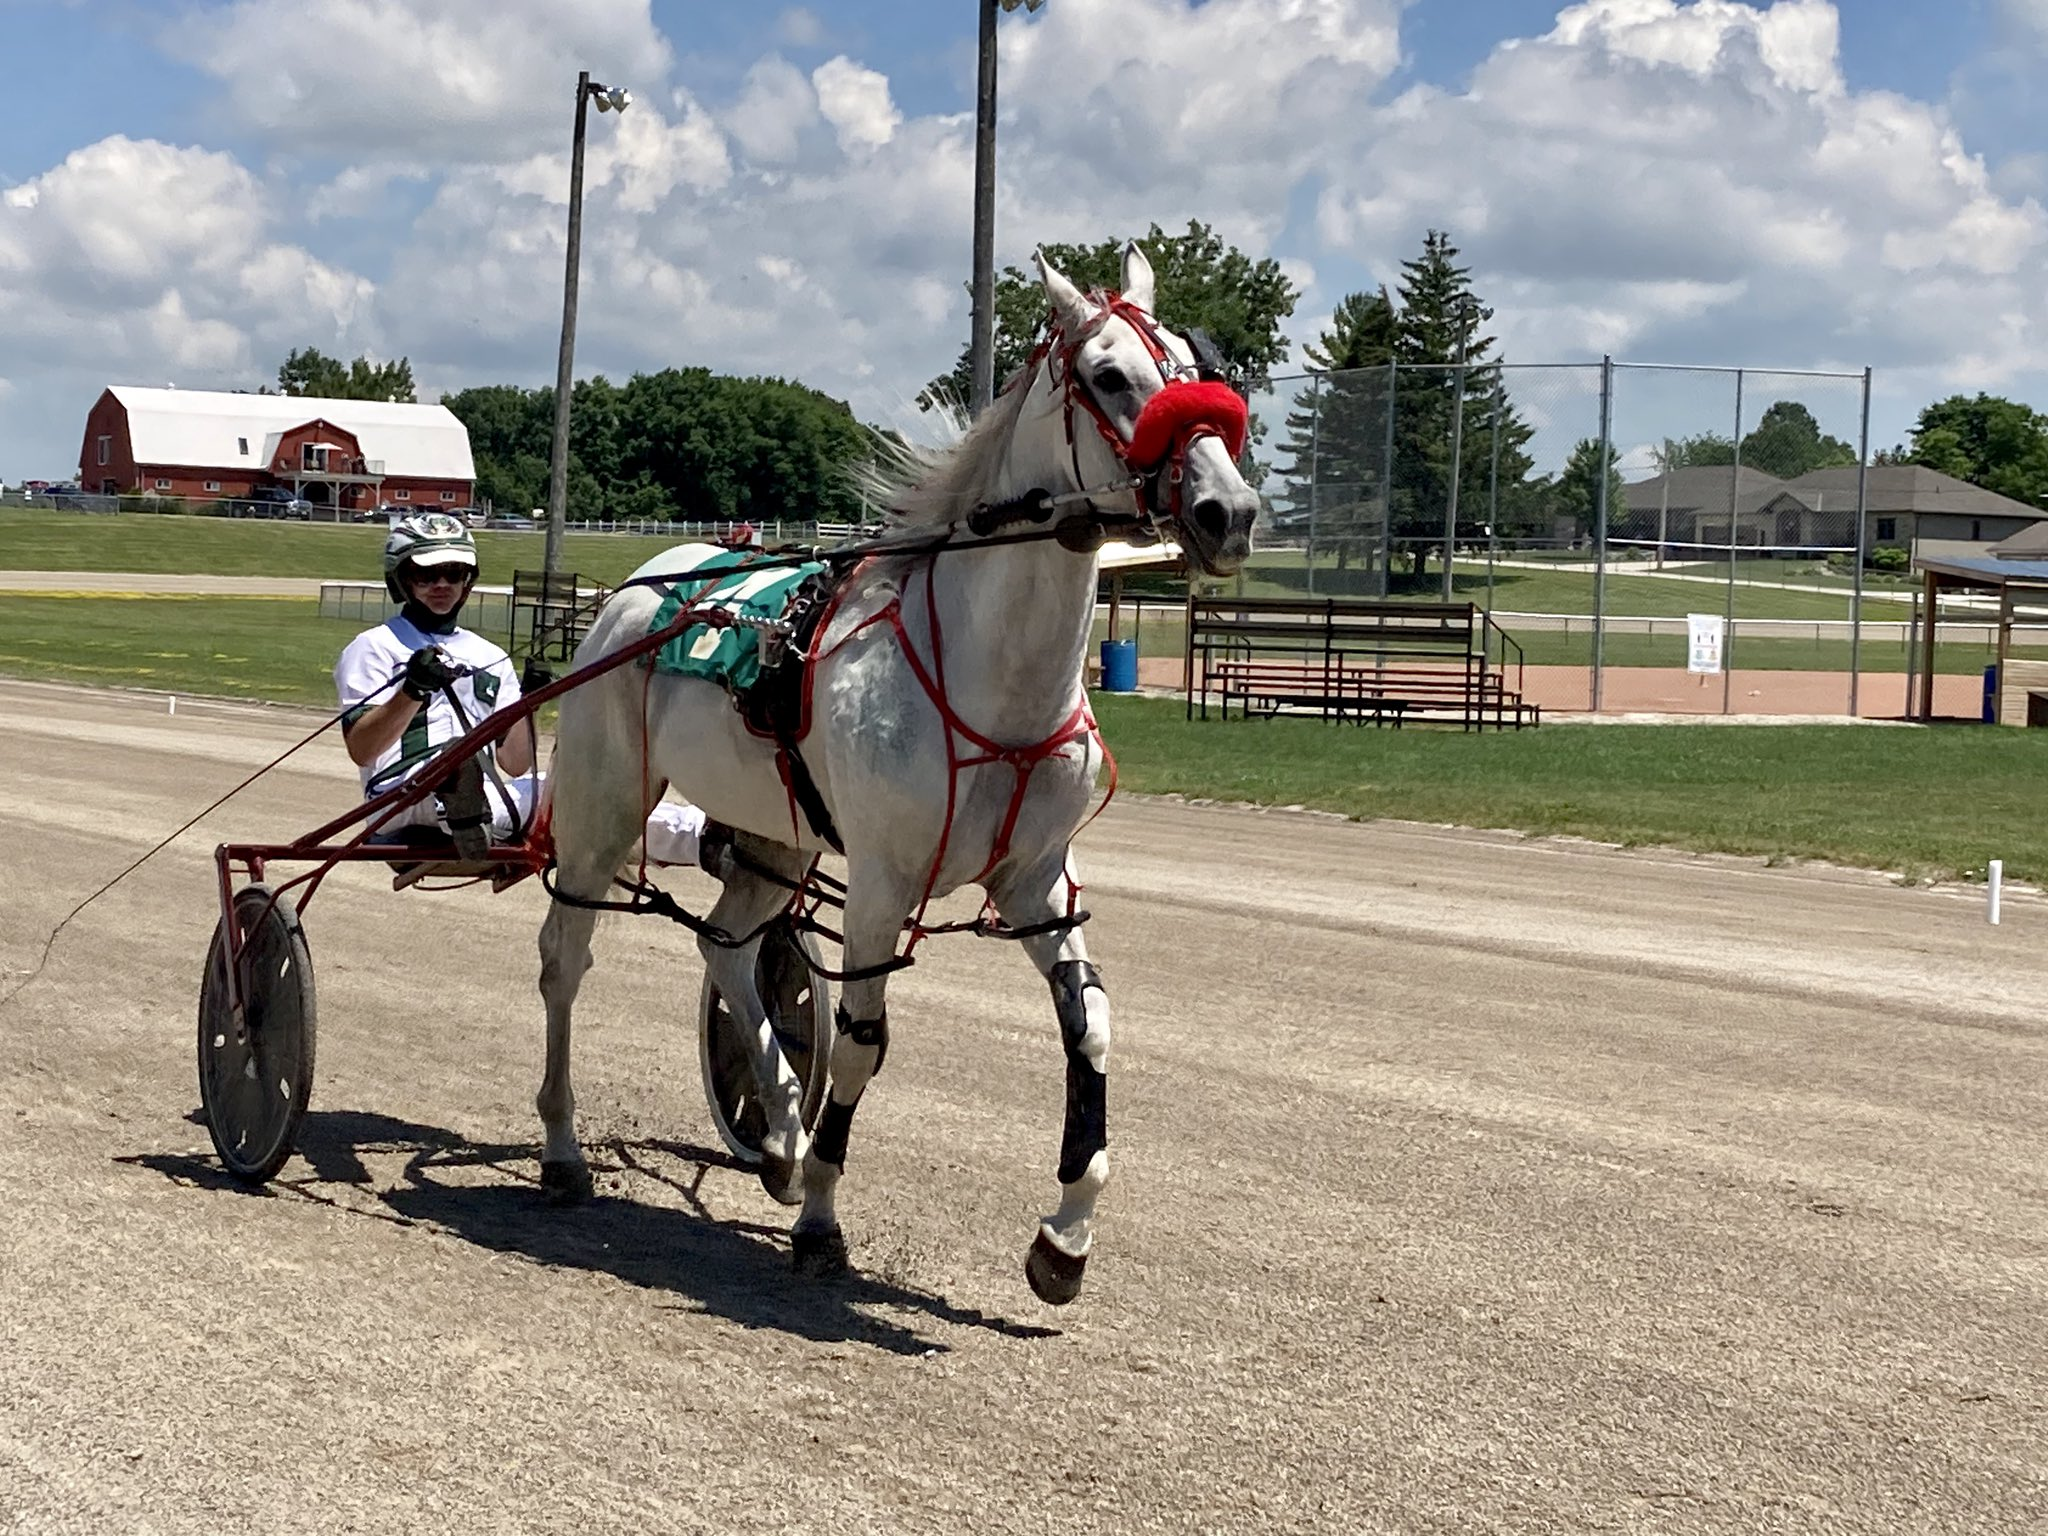 Garnet Barnsdale's Clinton Raceway Selections: Sunday, July 26, 2020